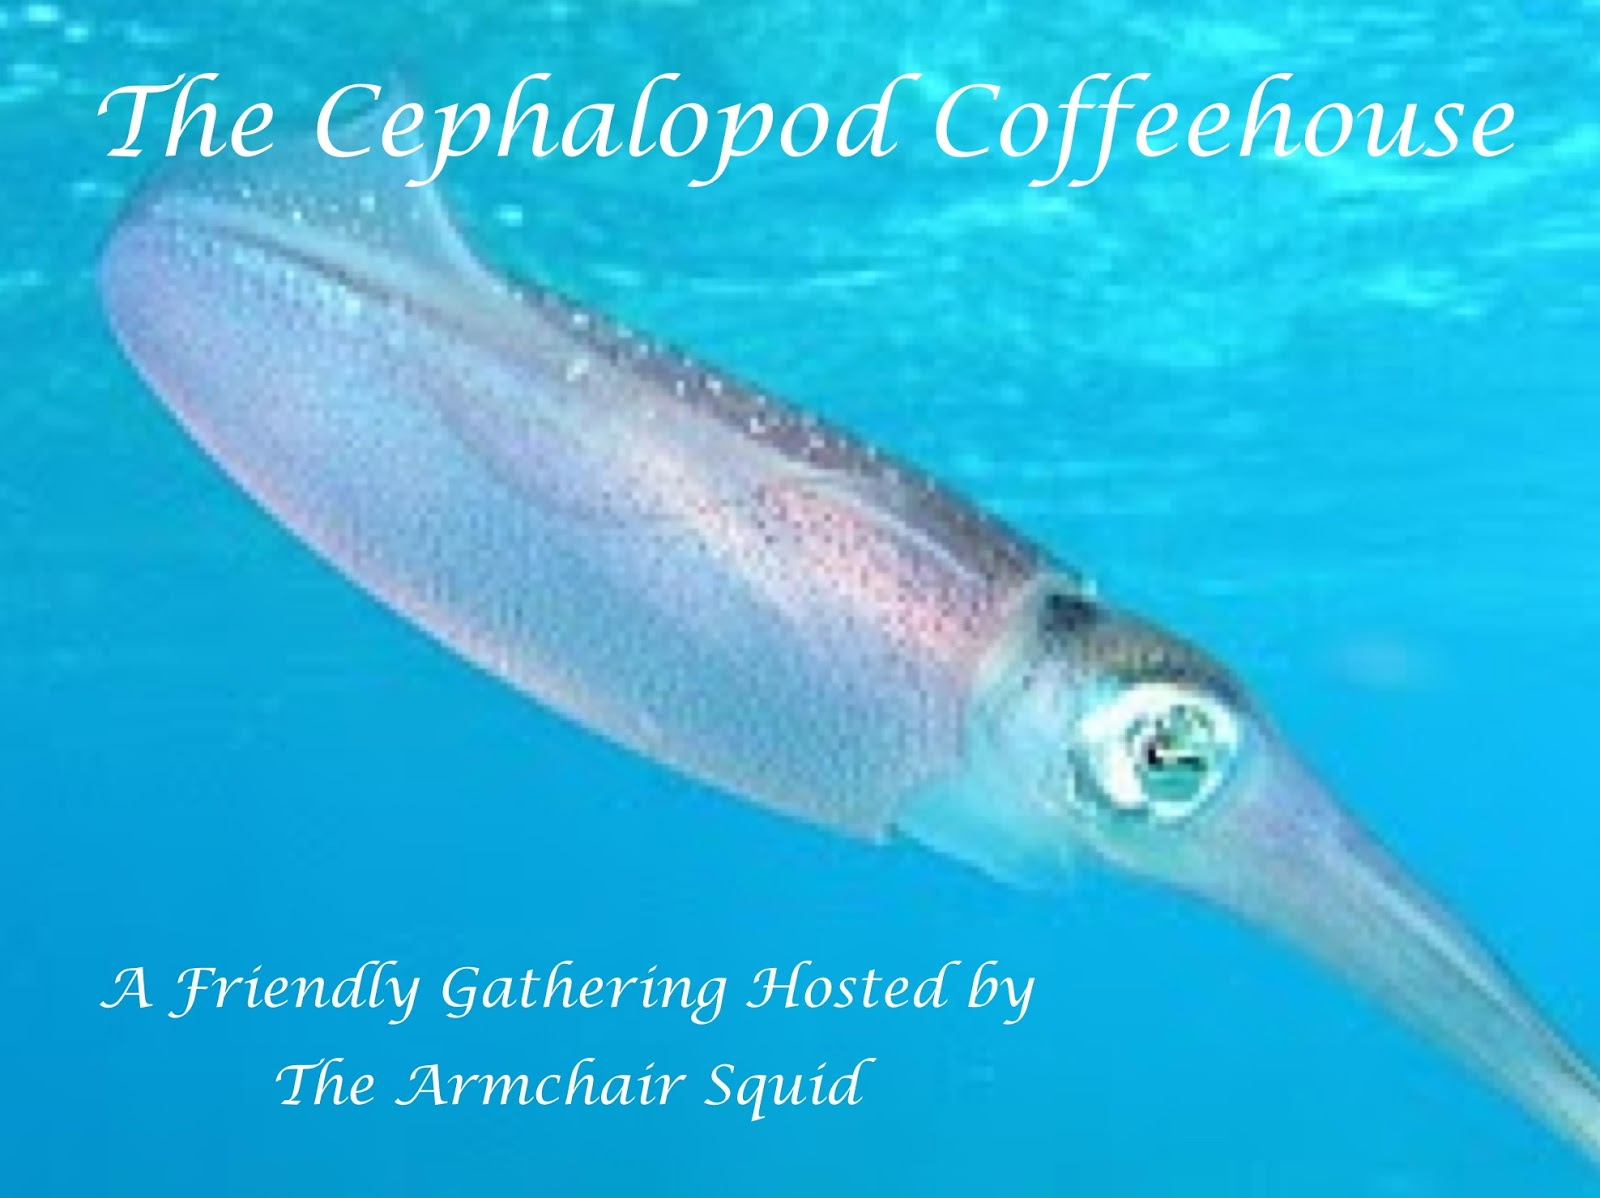 http://armchairsquid.blogspot.com/